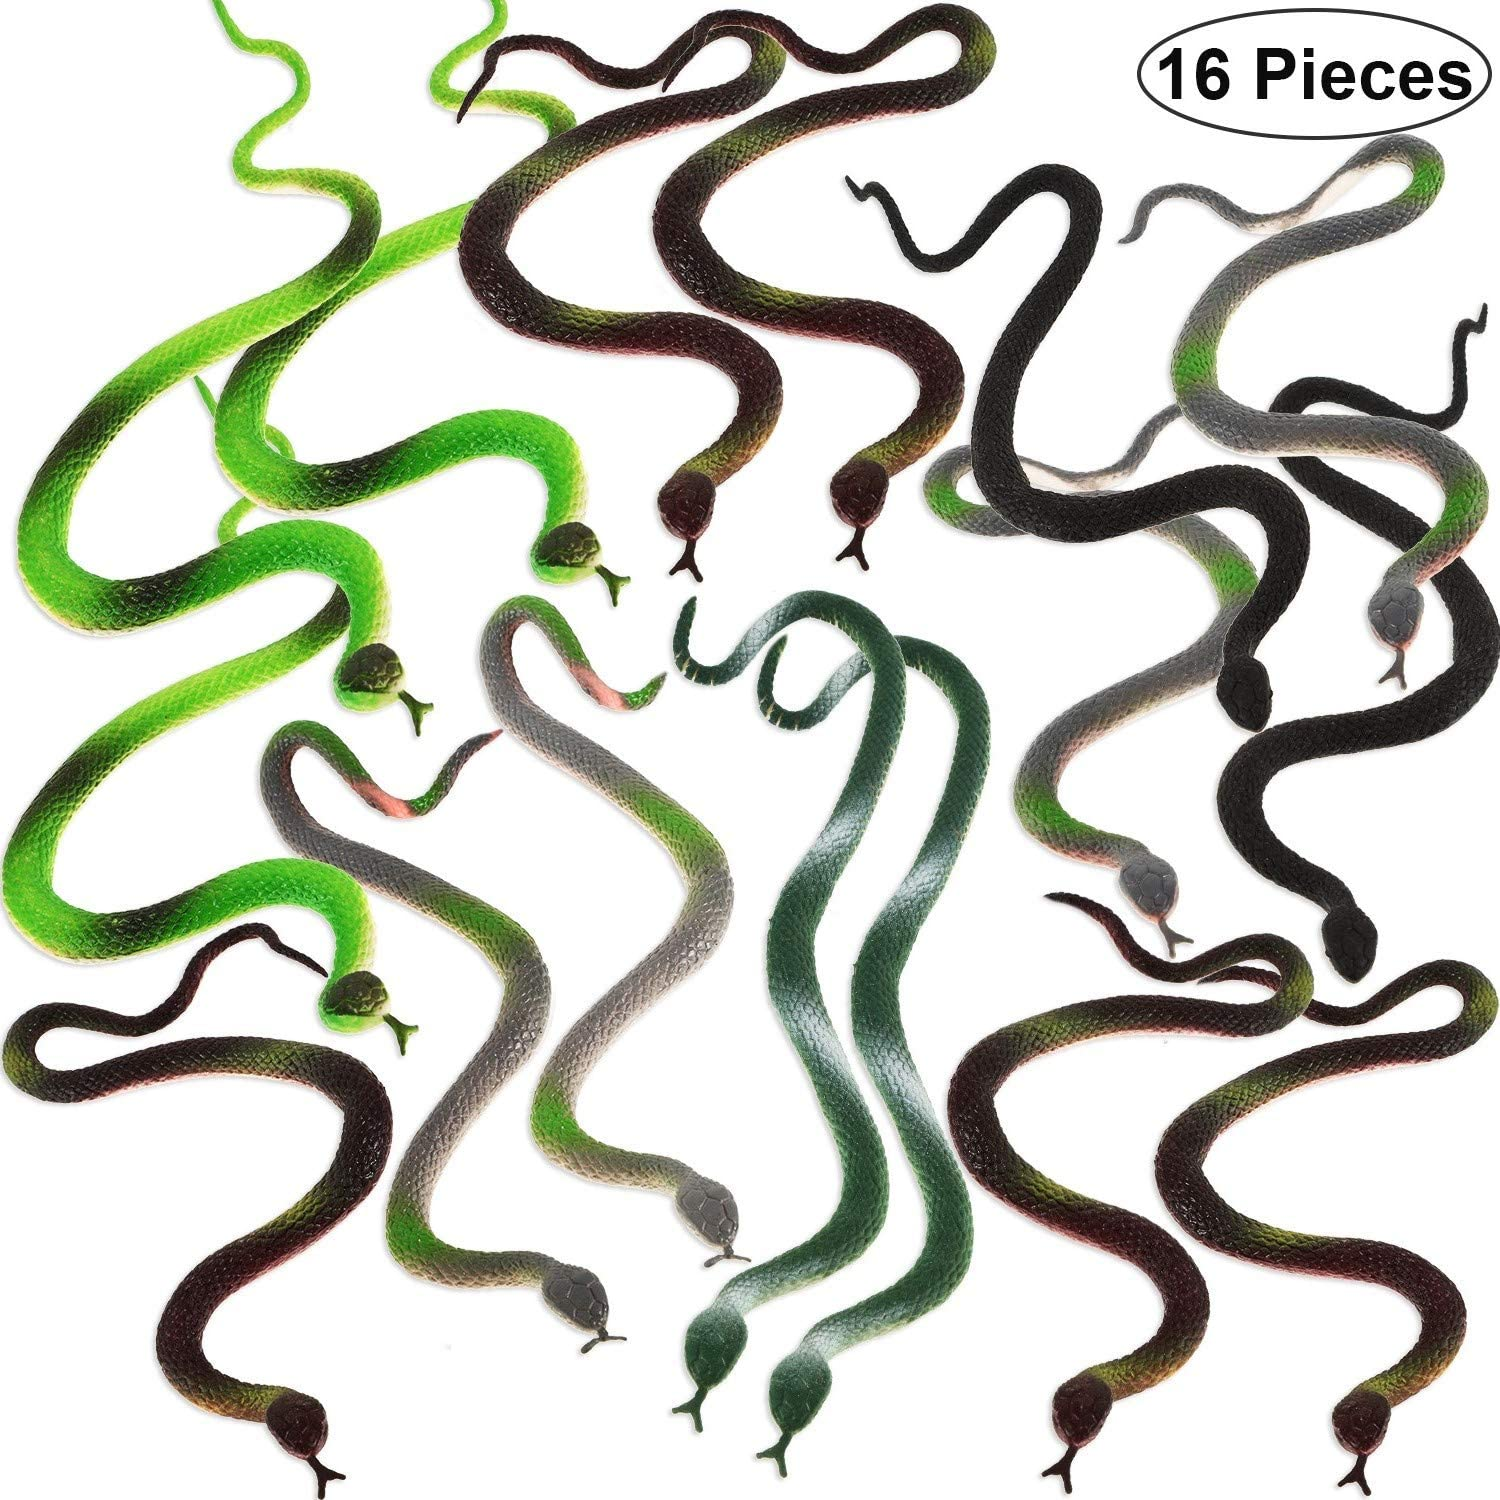 16 Pieces Small Rubber Snakes 14 Inch Assorted Fake Snakes Realistic Rain Forest Snakes Toys for Boys Gag Toys, Prop, Carnival Game Prizes and Party Decorations